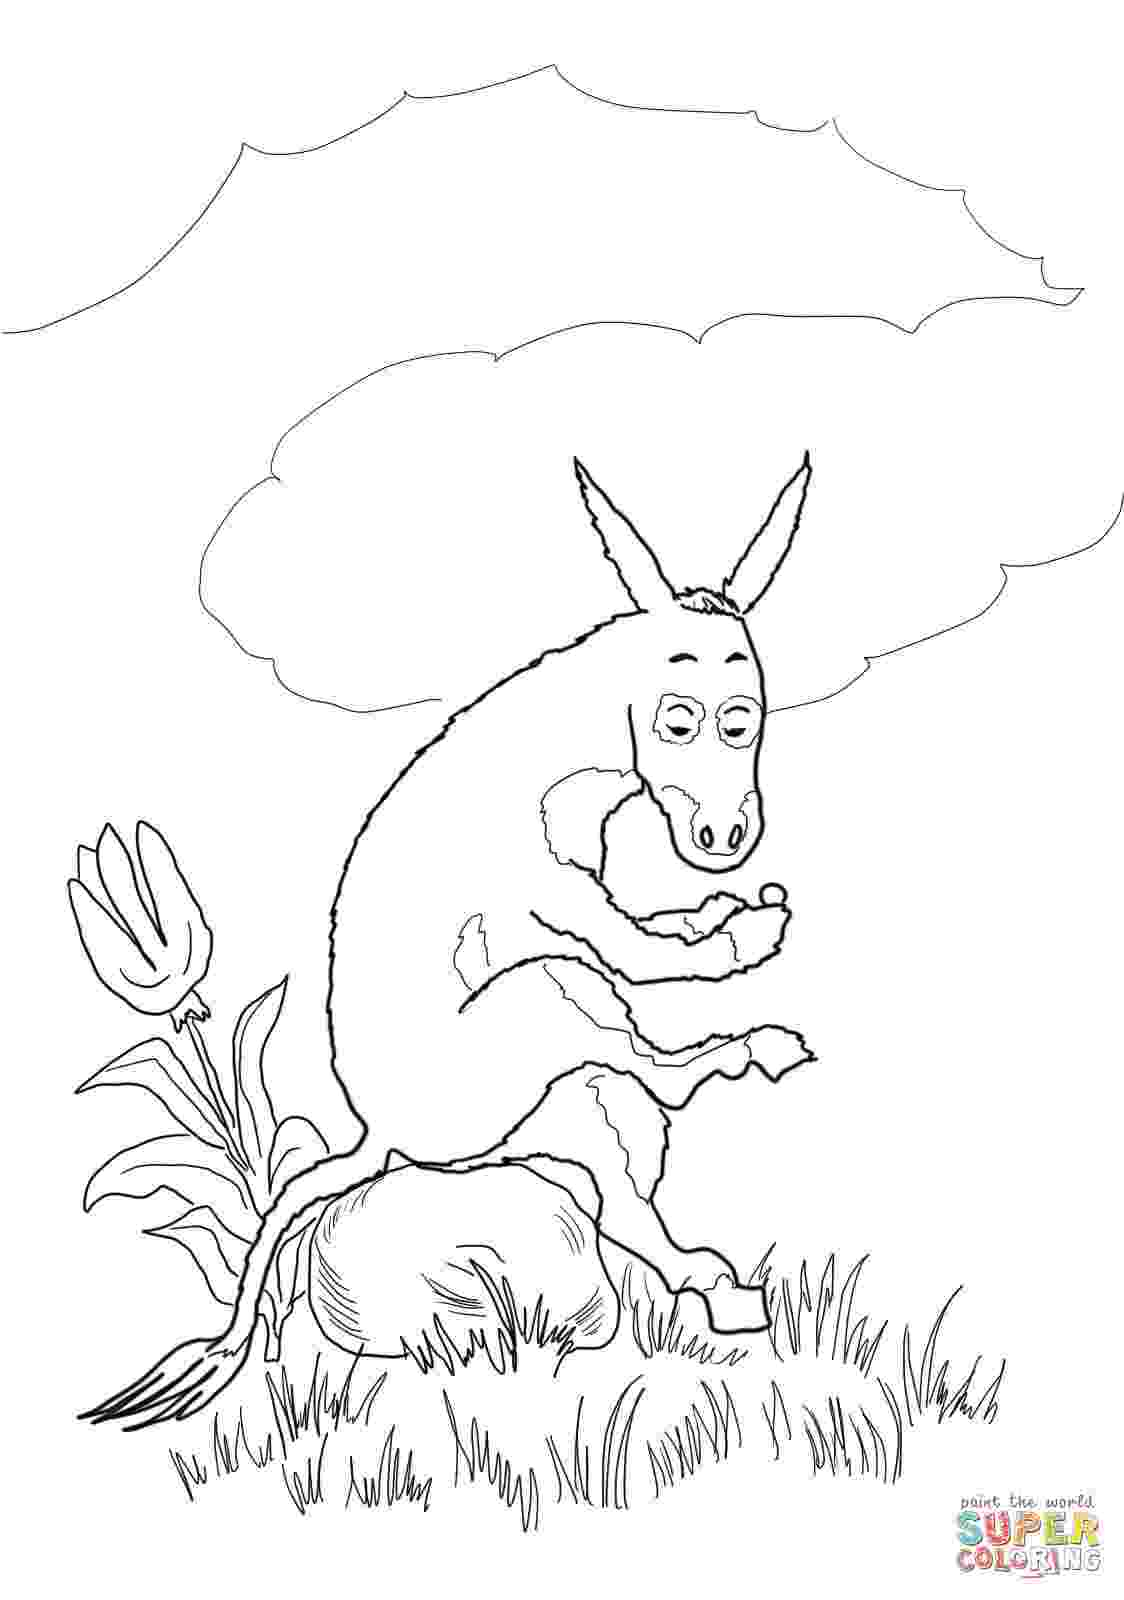 sylvester and the magic pebble coloring page sylvester and the magic pebble coloring page coloring home sylvester page and coloring the magic pebble